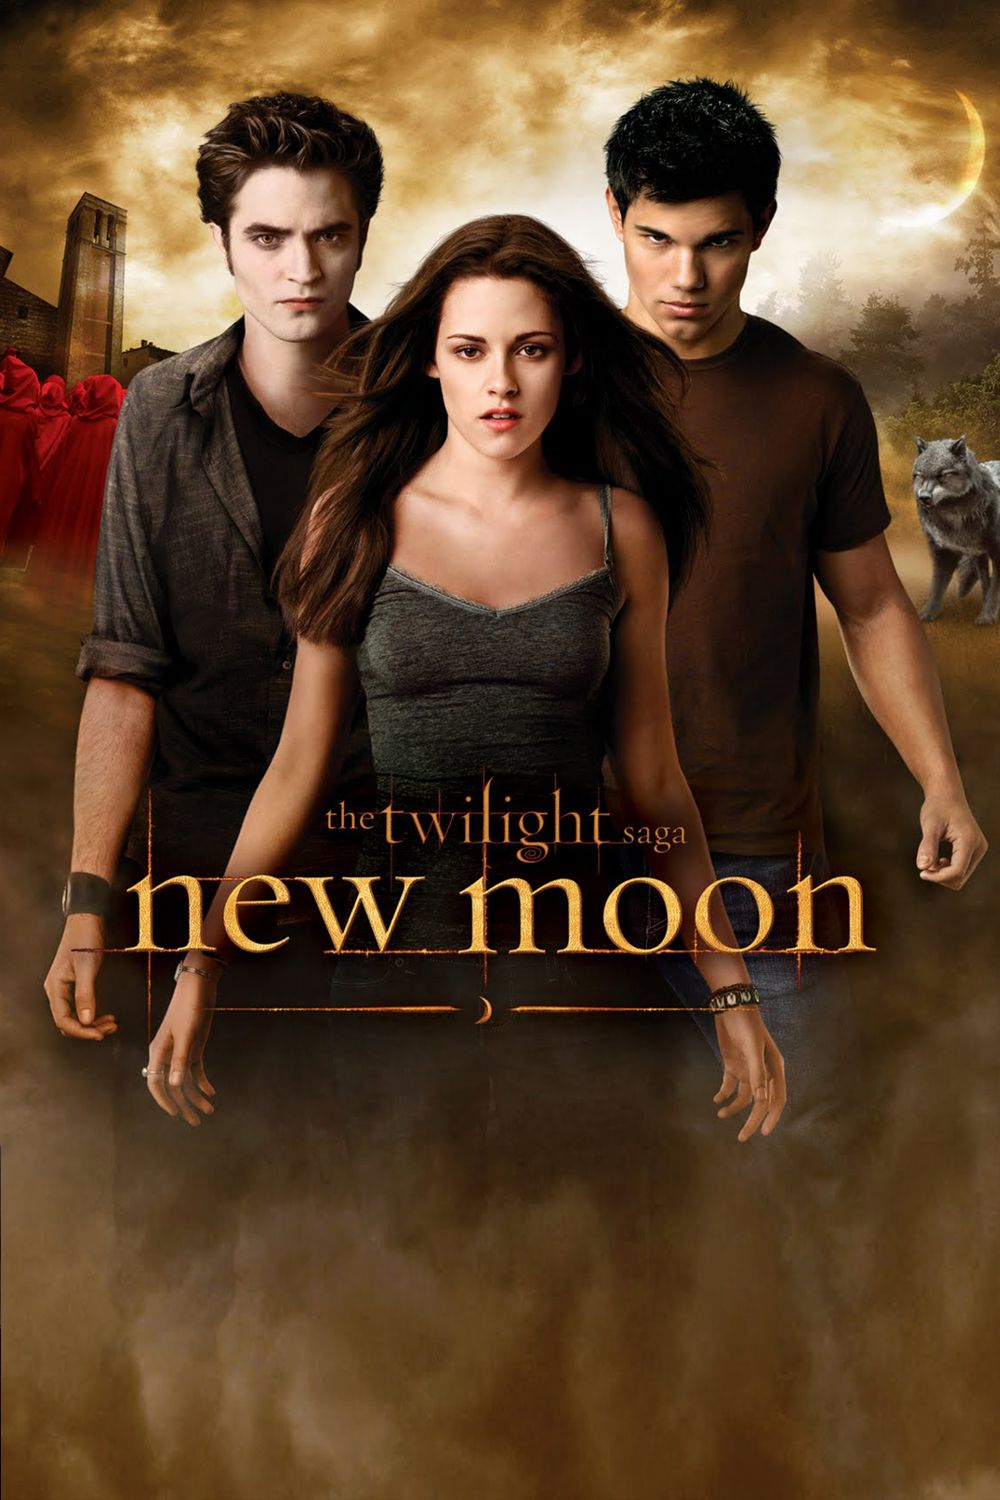 Twilight New Moon The Saga Cover Artwork